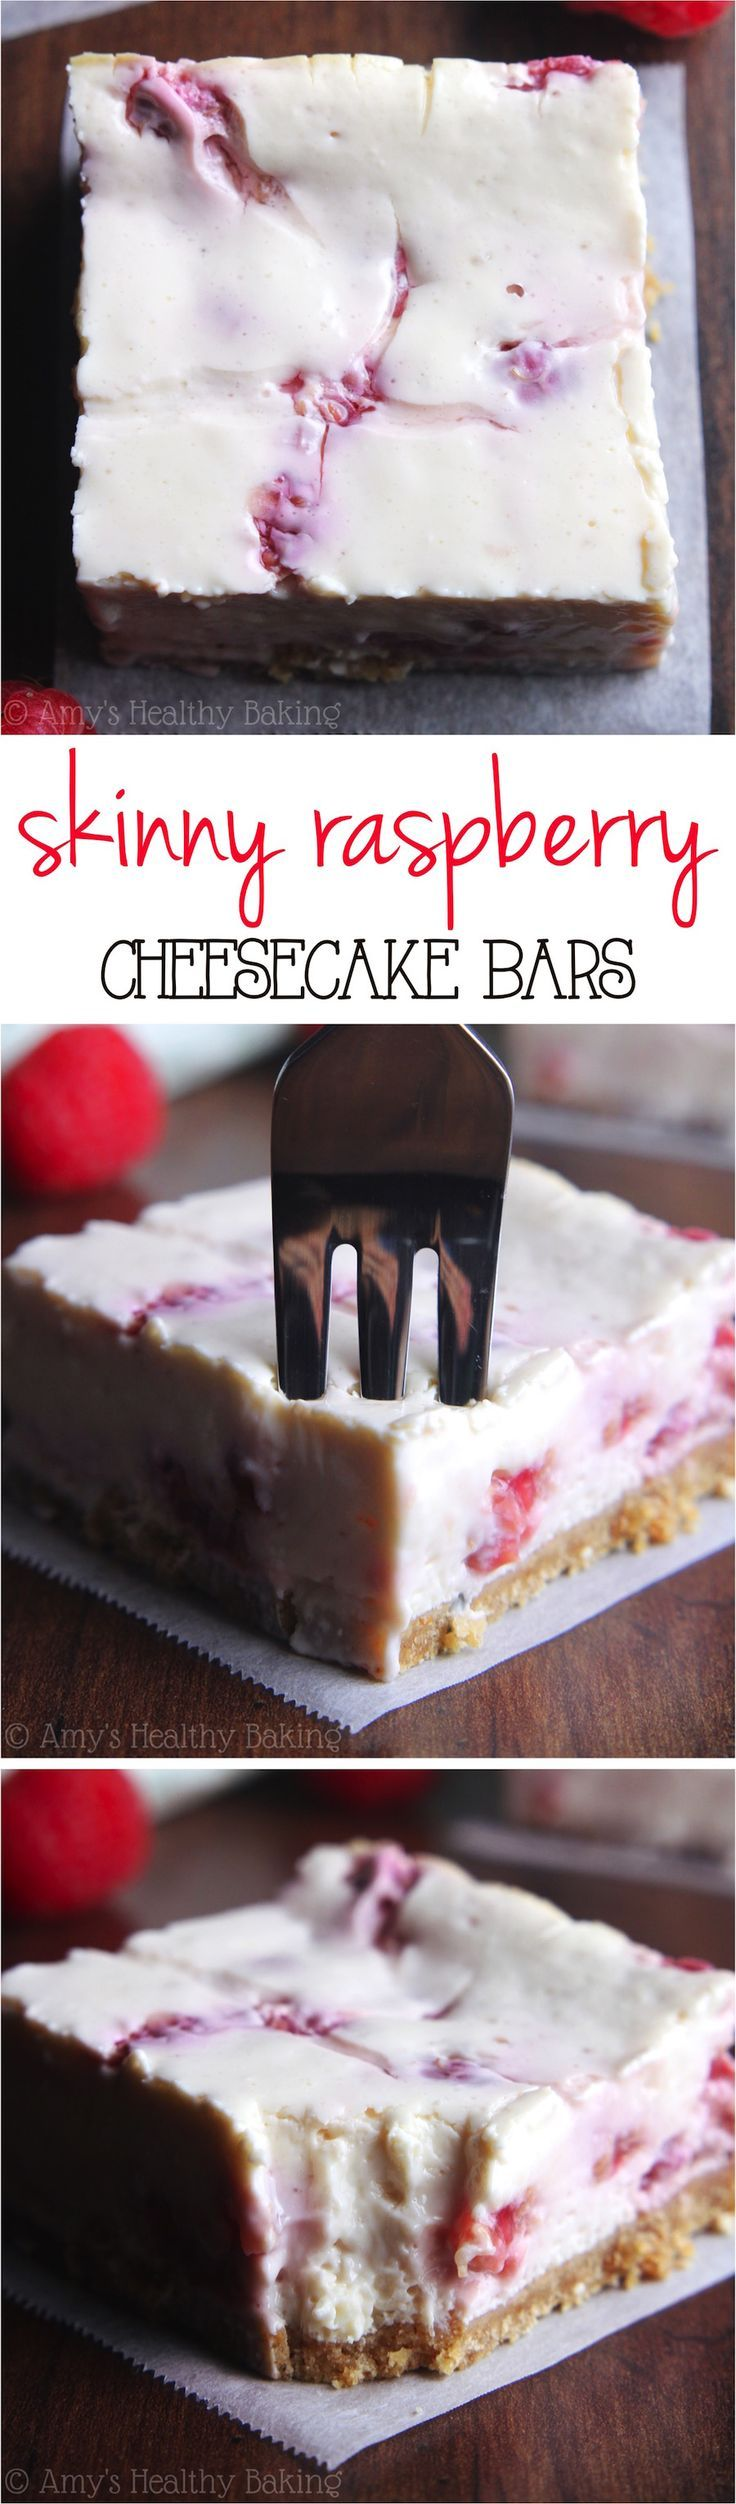 Skinny Raspberry Cheesecake Bars -- SO easy to make & packed with 5g of protein! Only 97 calories! (Easy Meal To Make Healthy)